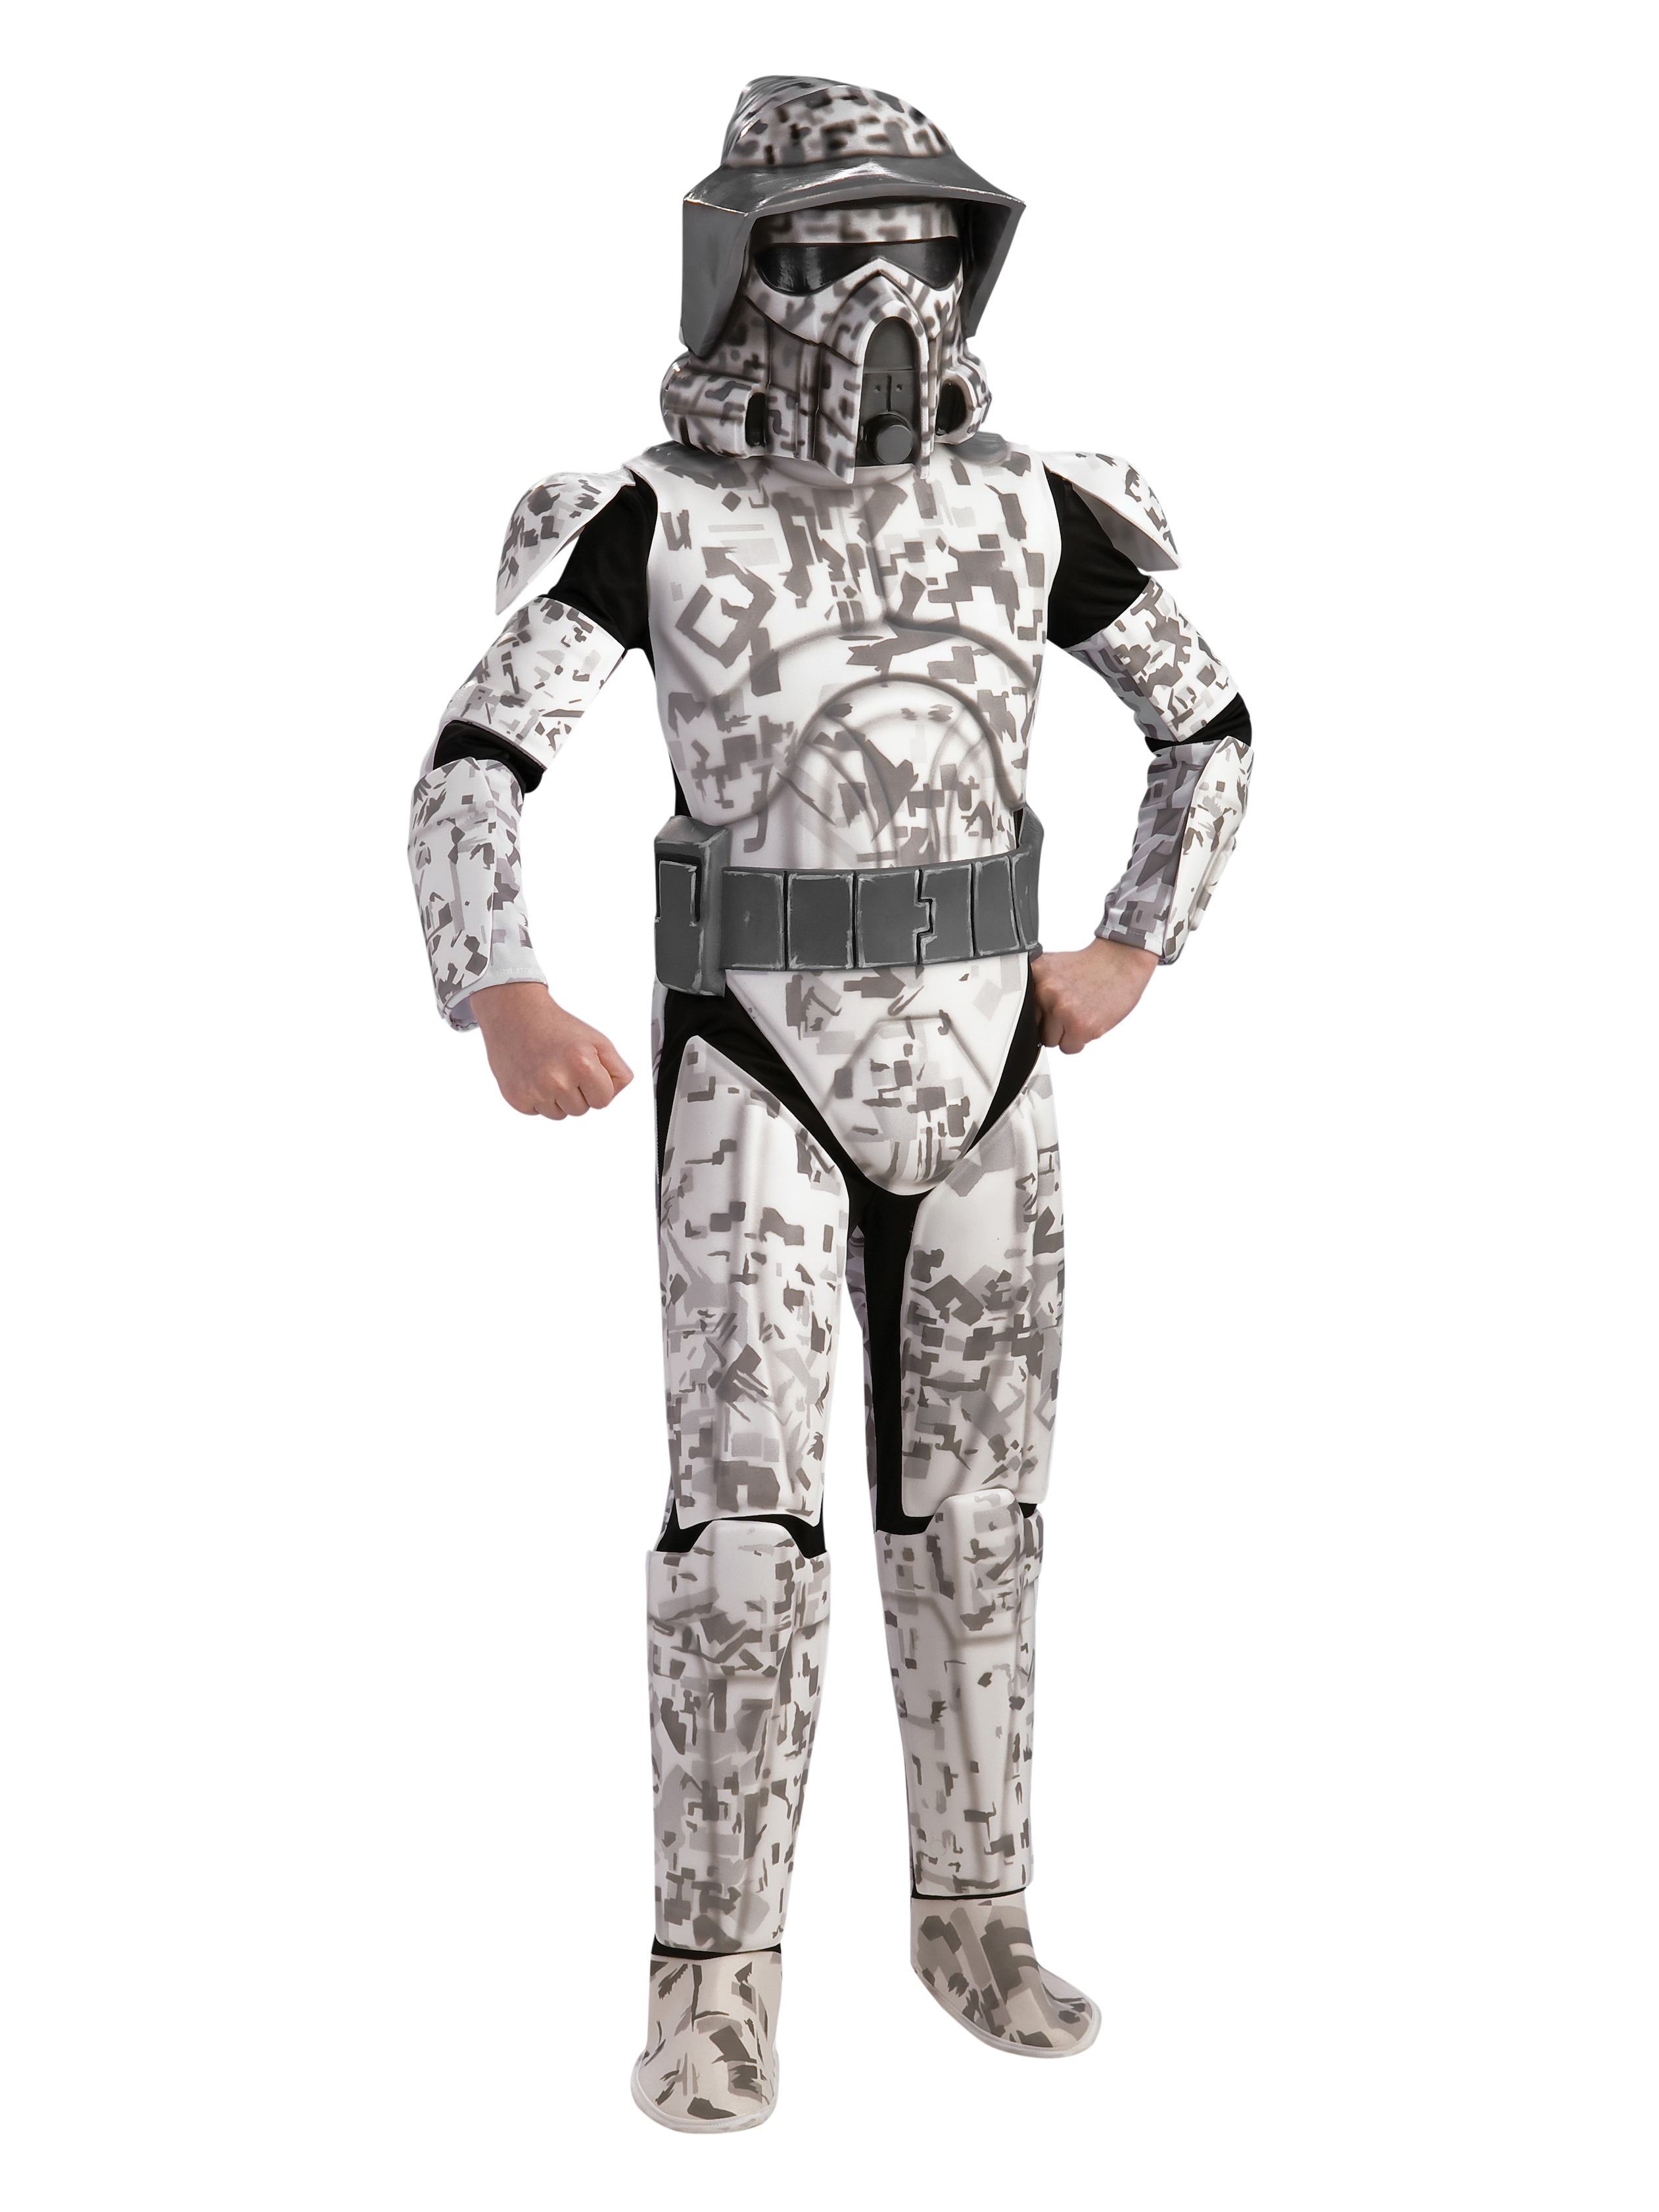 Kids Deluxe Clone Wars Arf Trooper Costume For Boys R883991-S